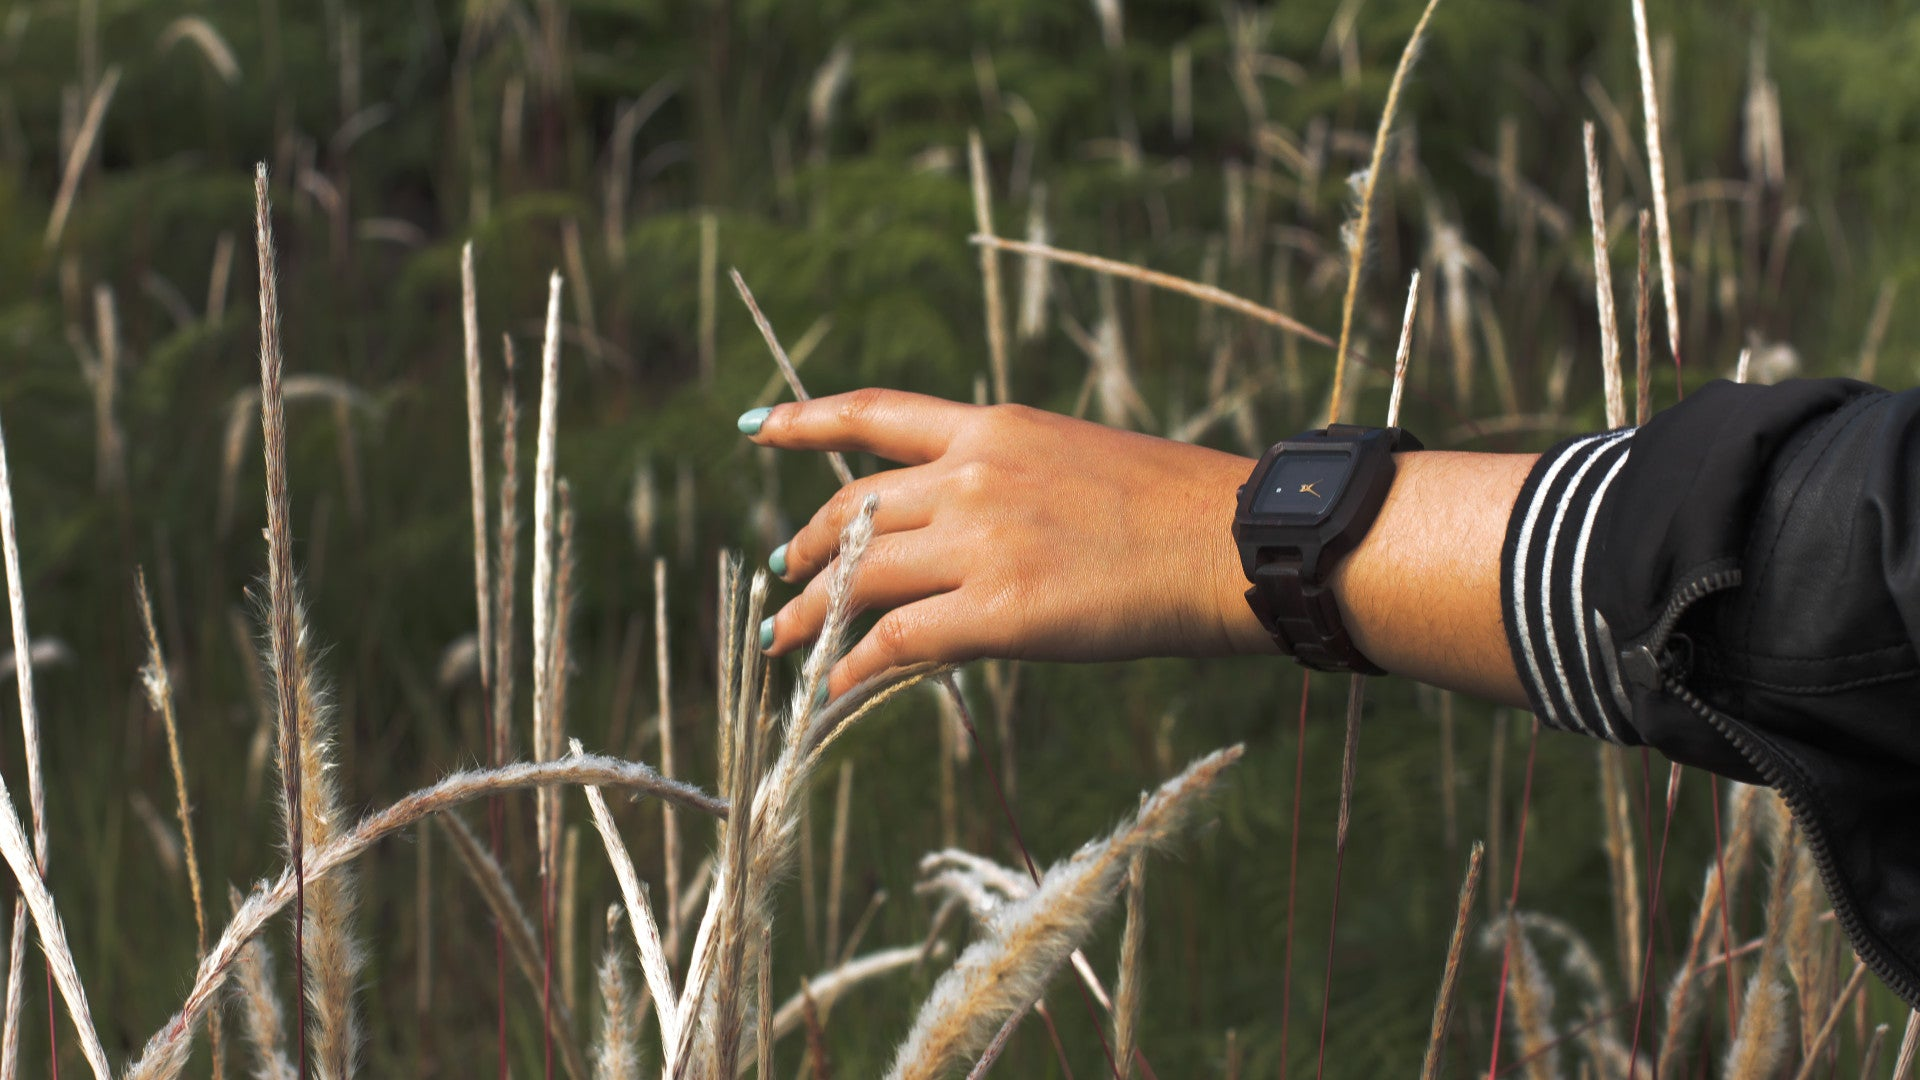 WUD Apparel wood watch natural sustainable